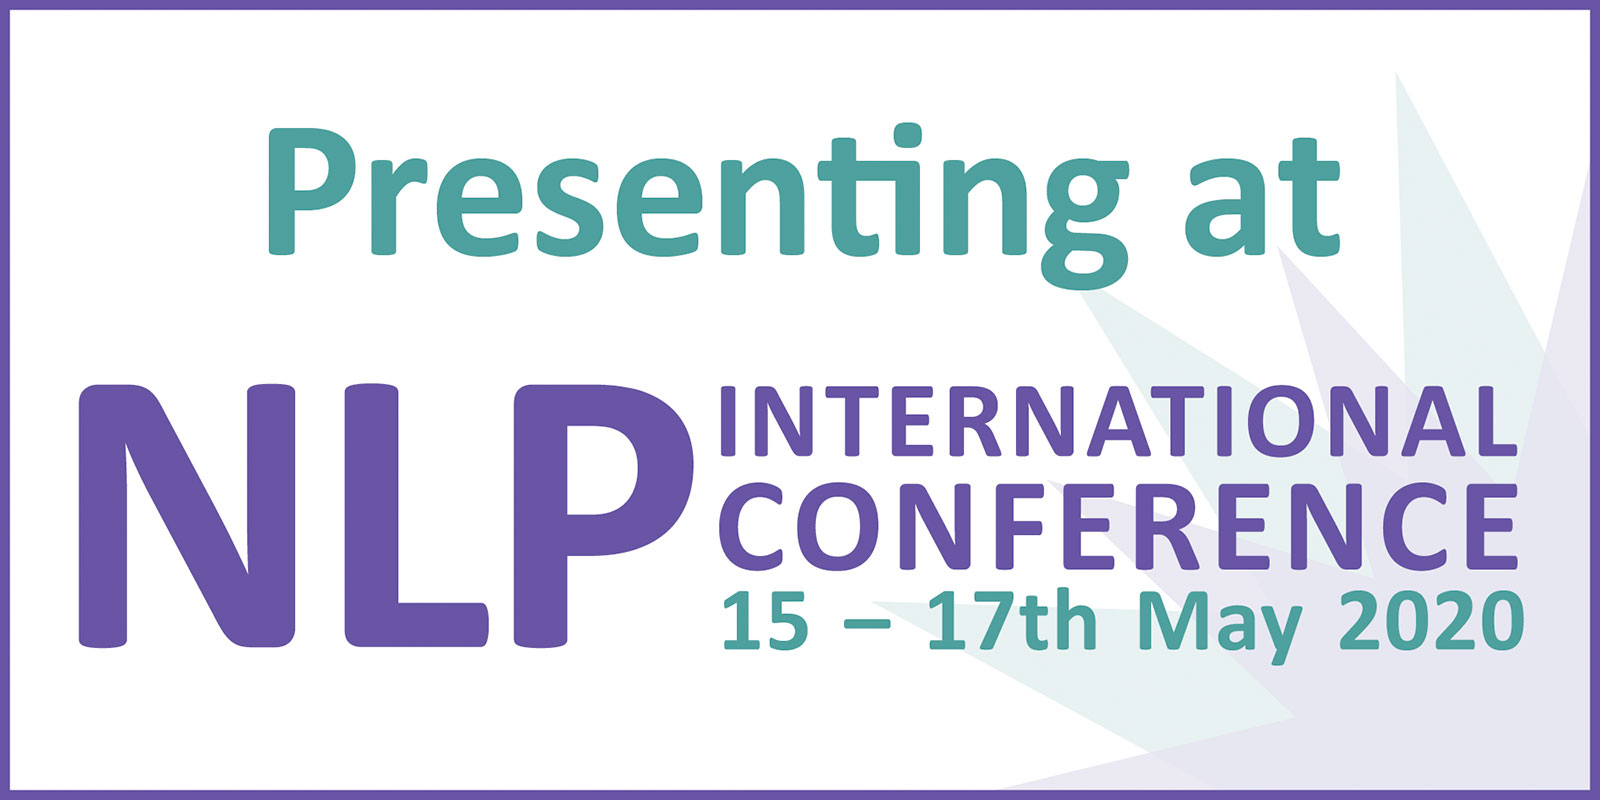 nlp_conference_2020